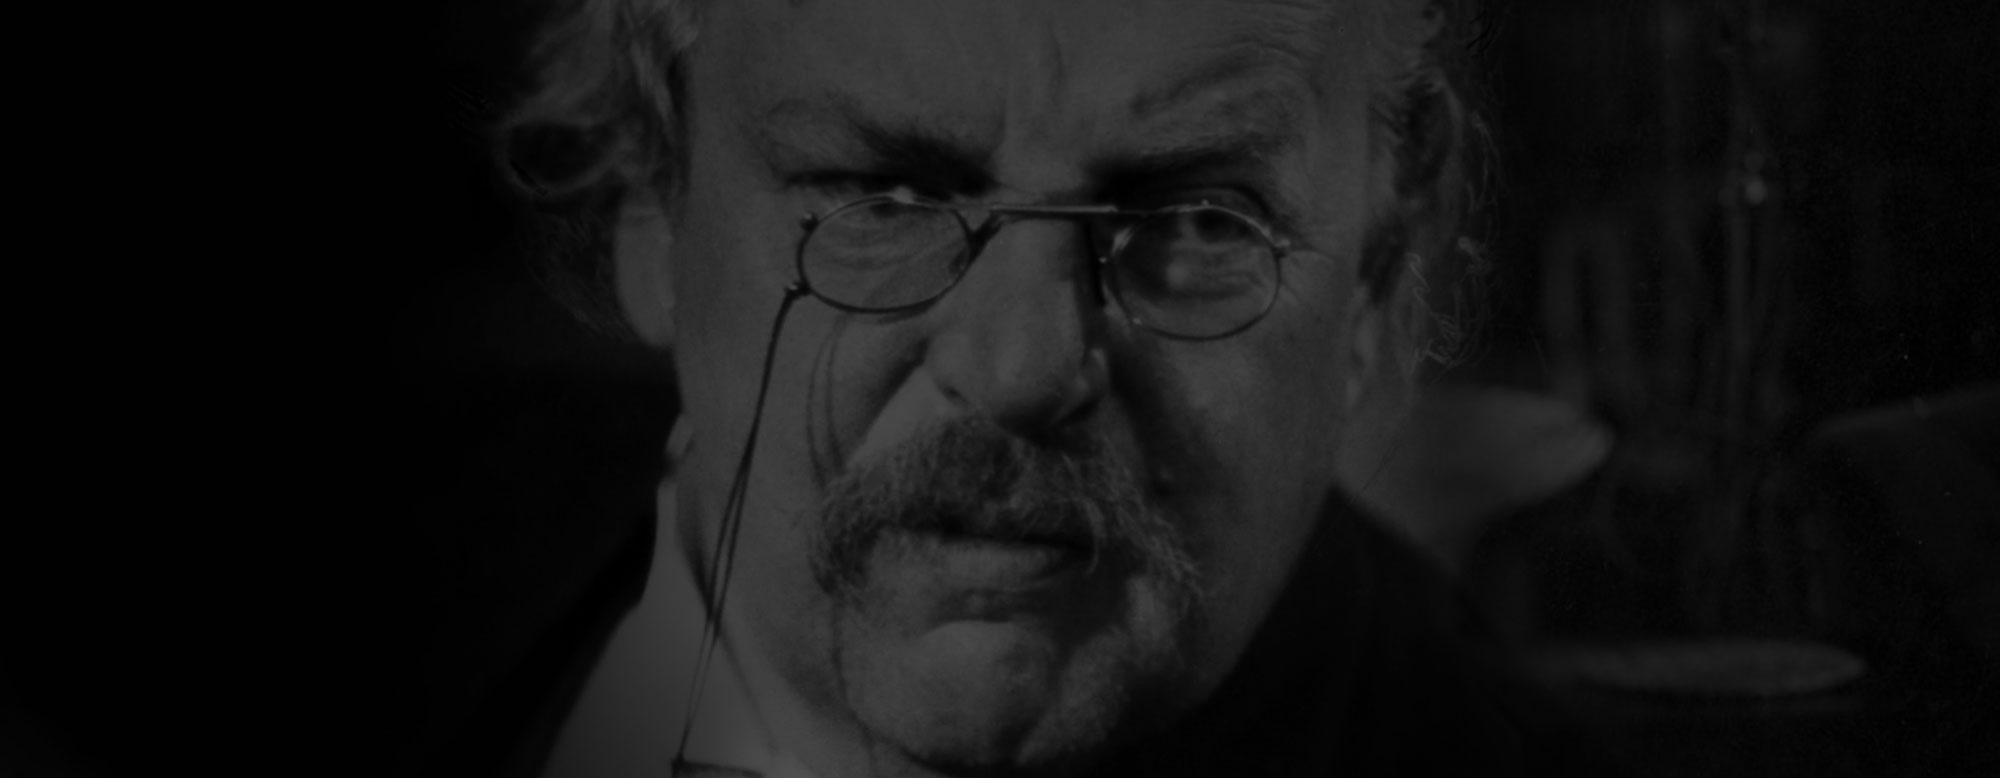 Chesterton: 'The Politician Is The Pestilence of Modern Times'